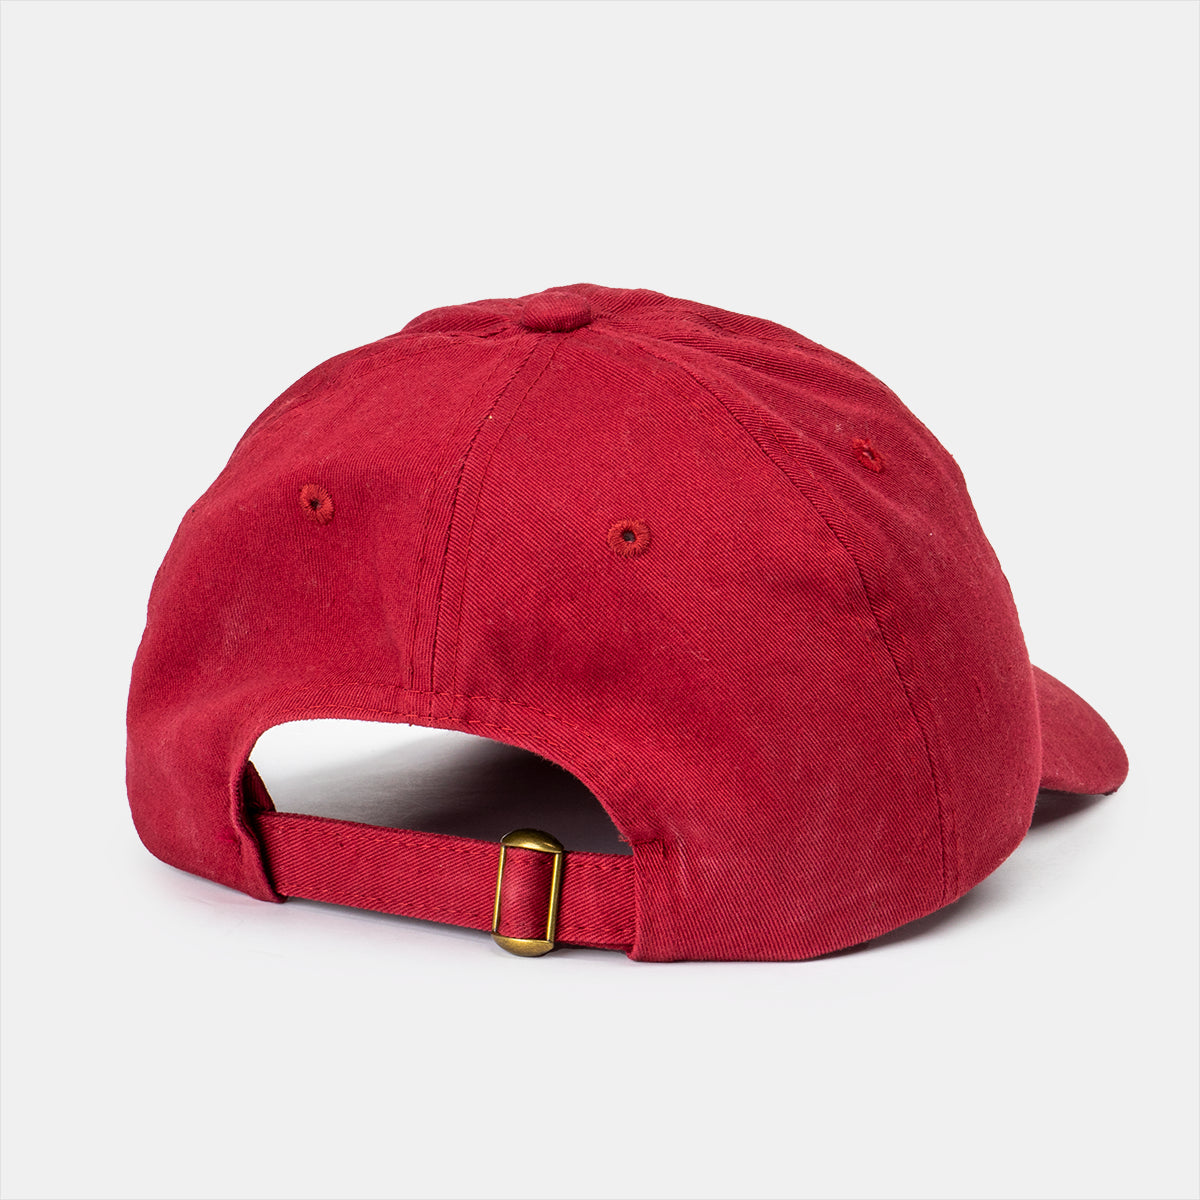 The Jukebox Dad Hat